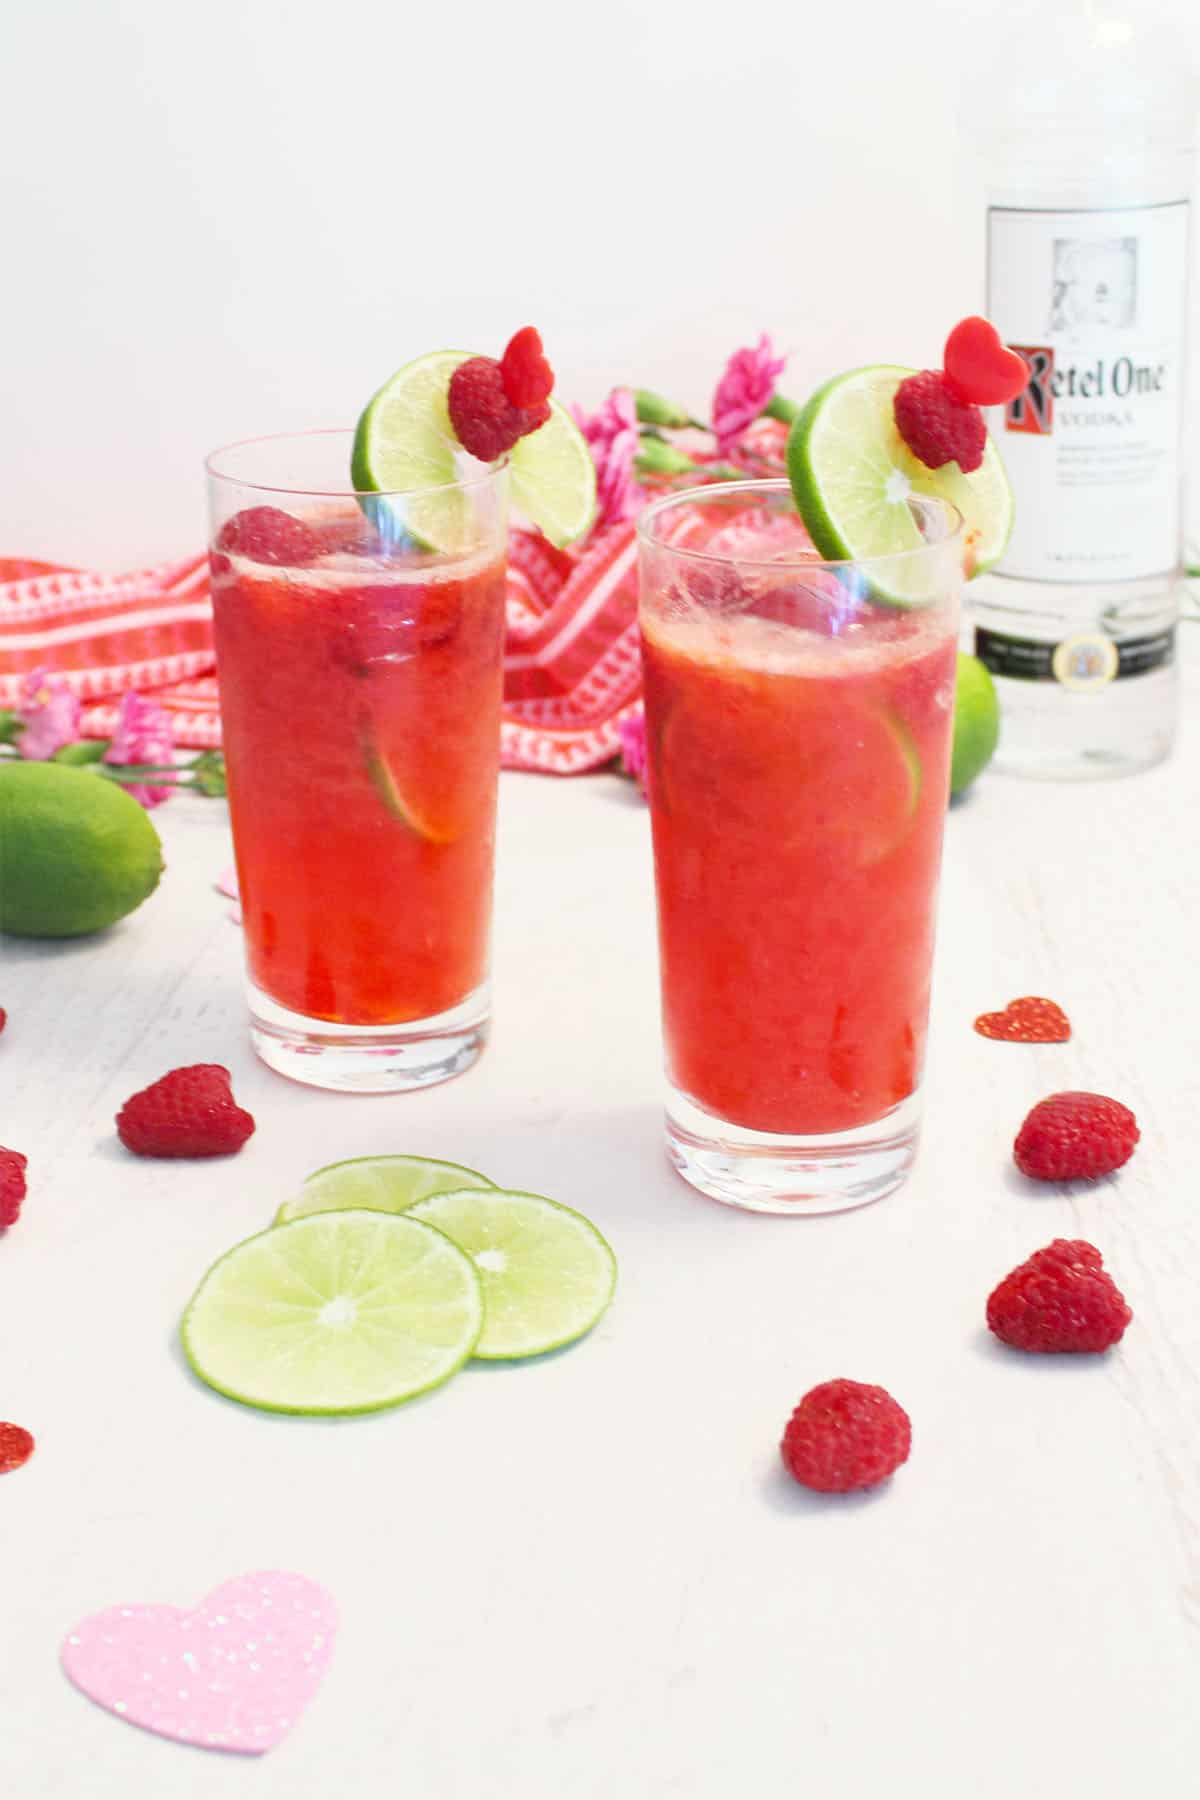 Two raspberry lime rickey cocktails with garnish on white table with raspberries, lime slices and vodka bottle.